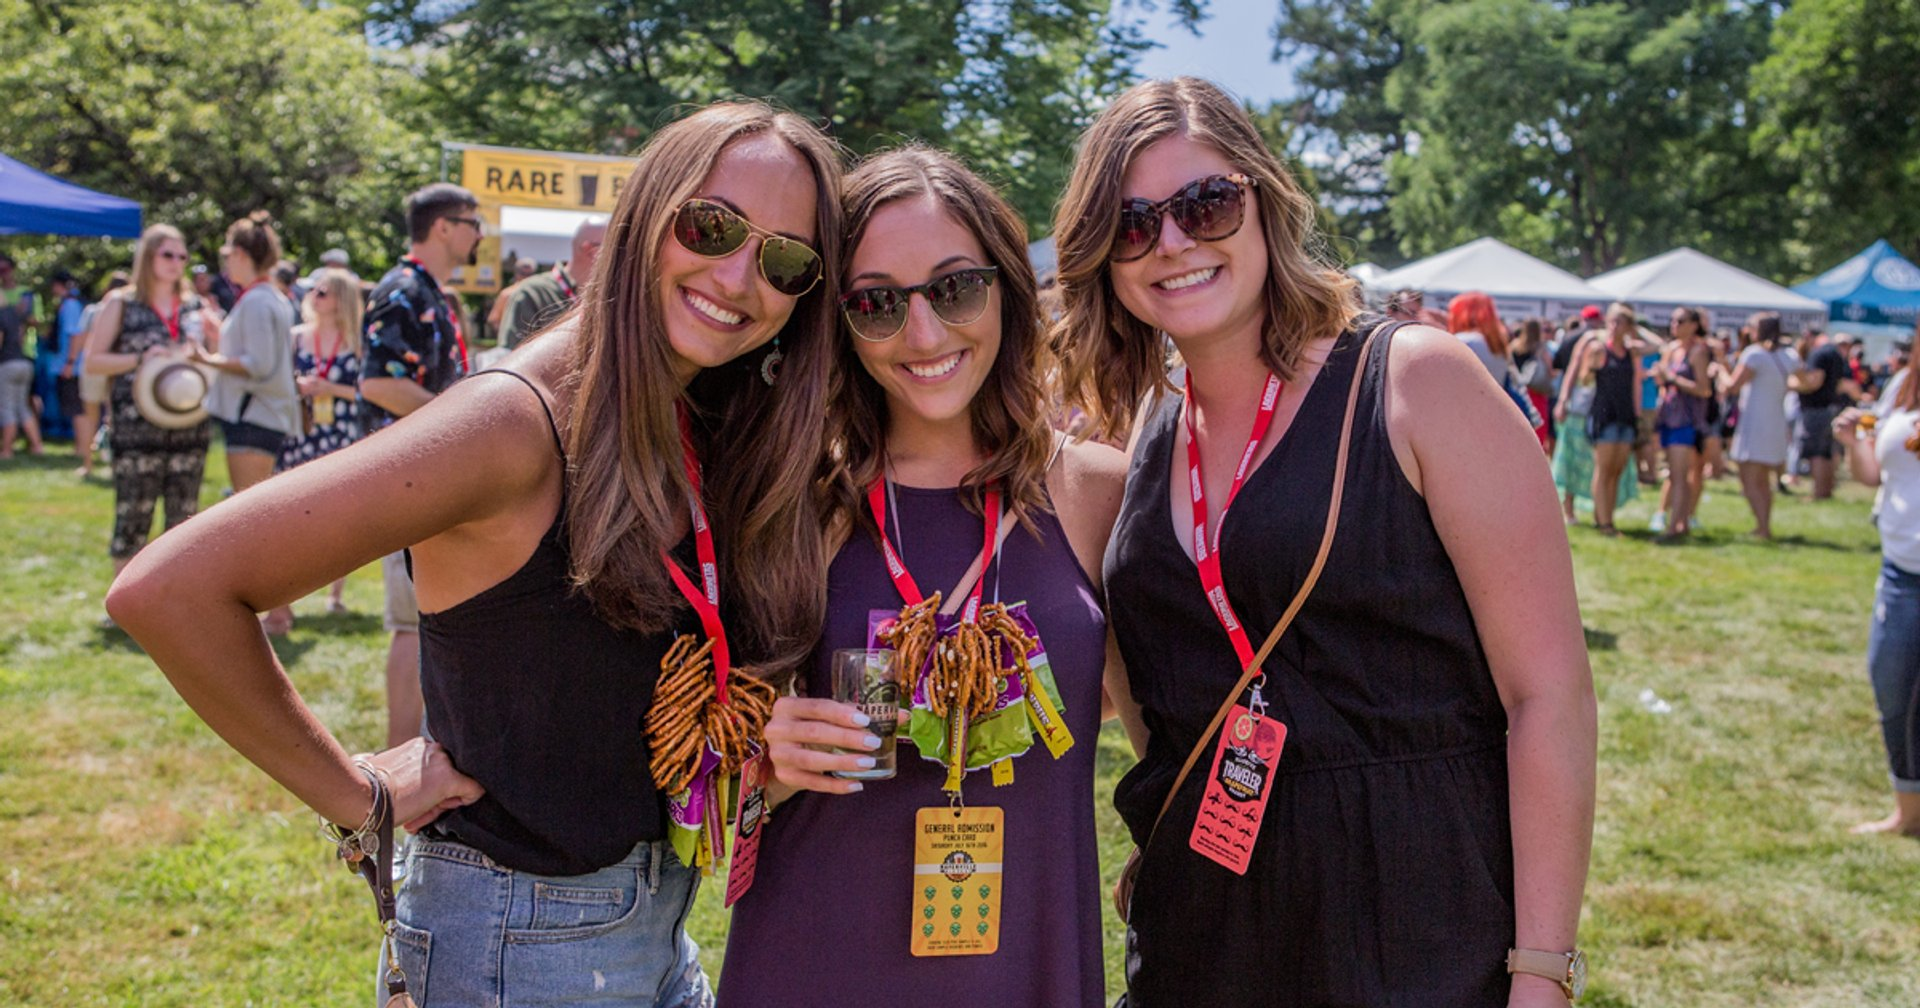 Naperville Ale Fest in Illinois - Best Season 2020